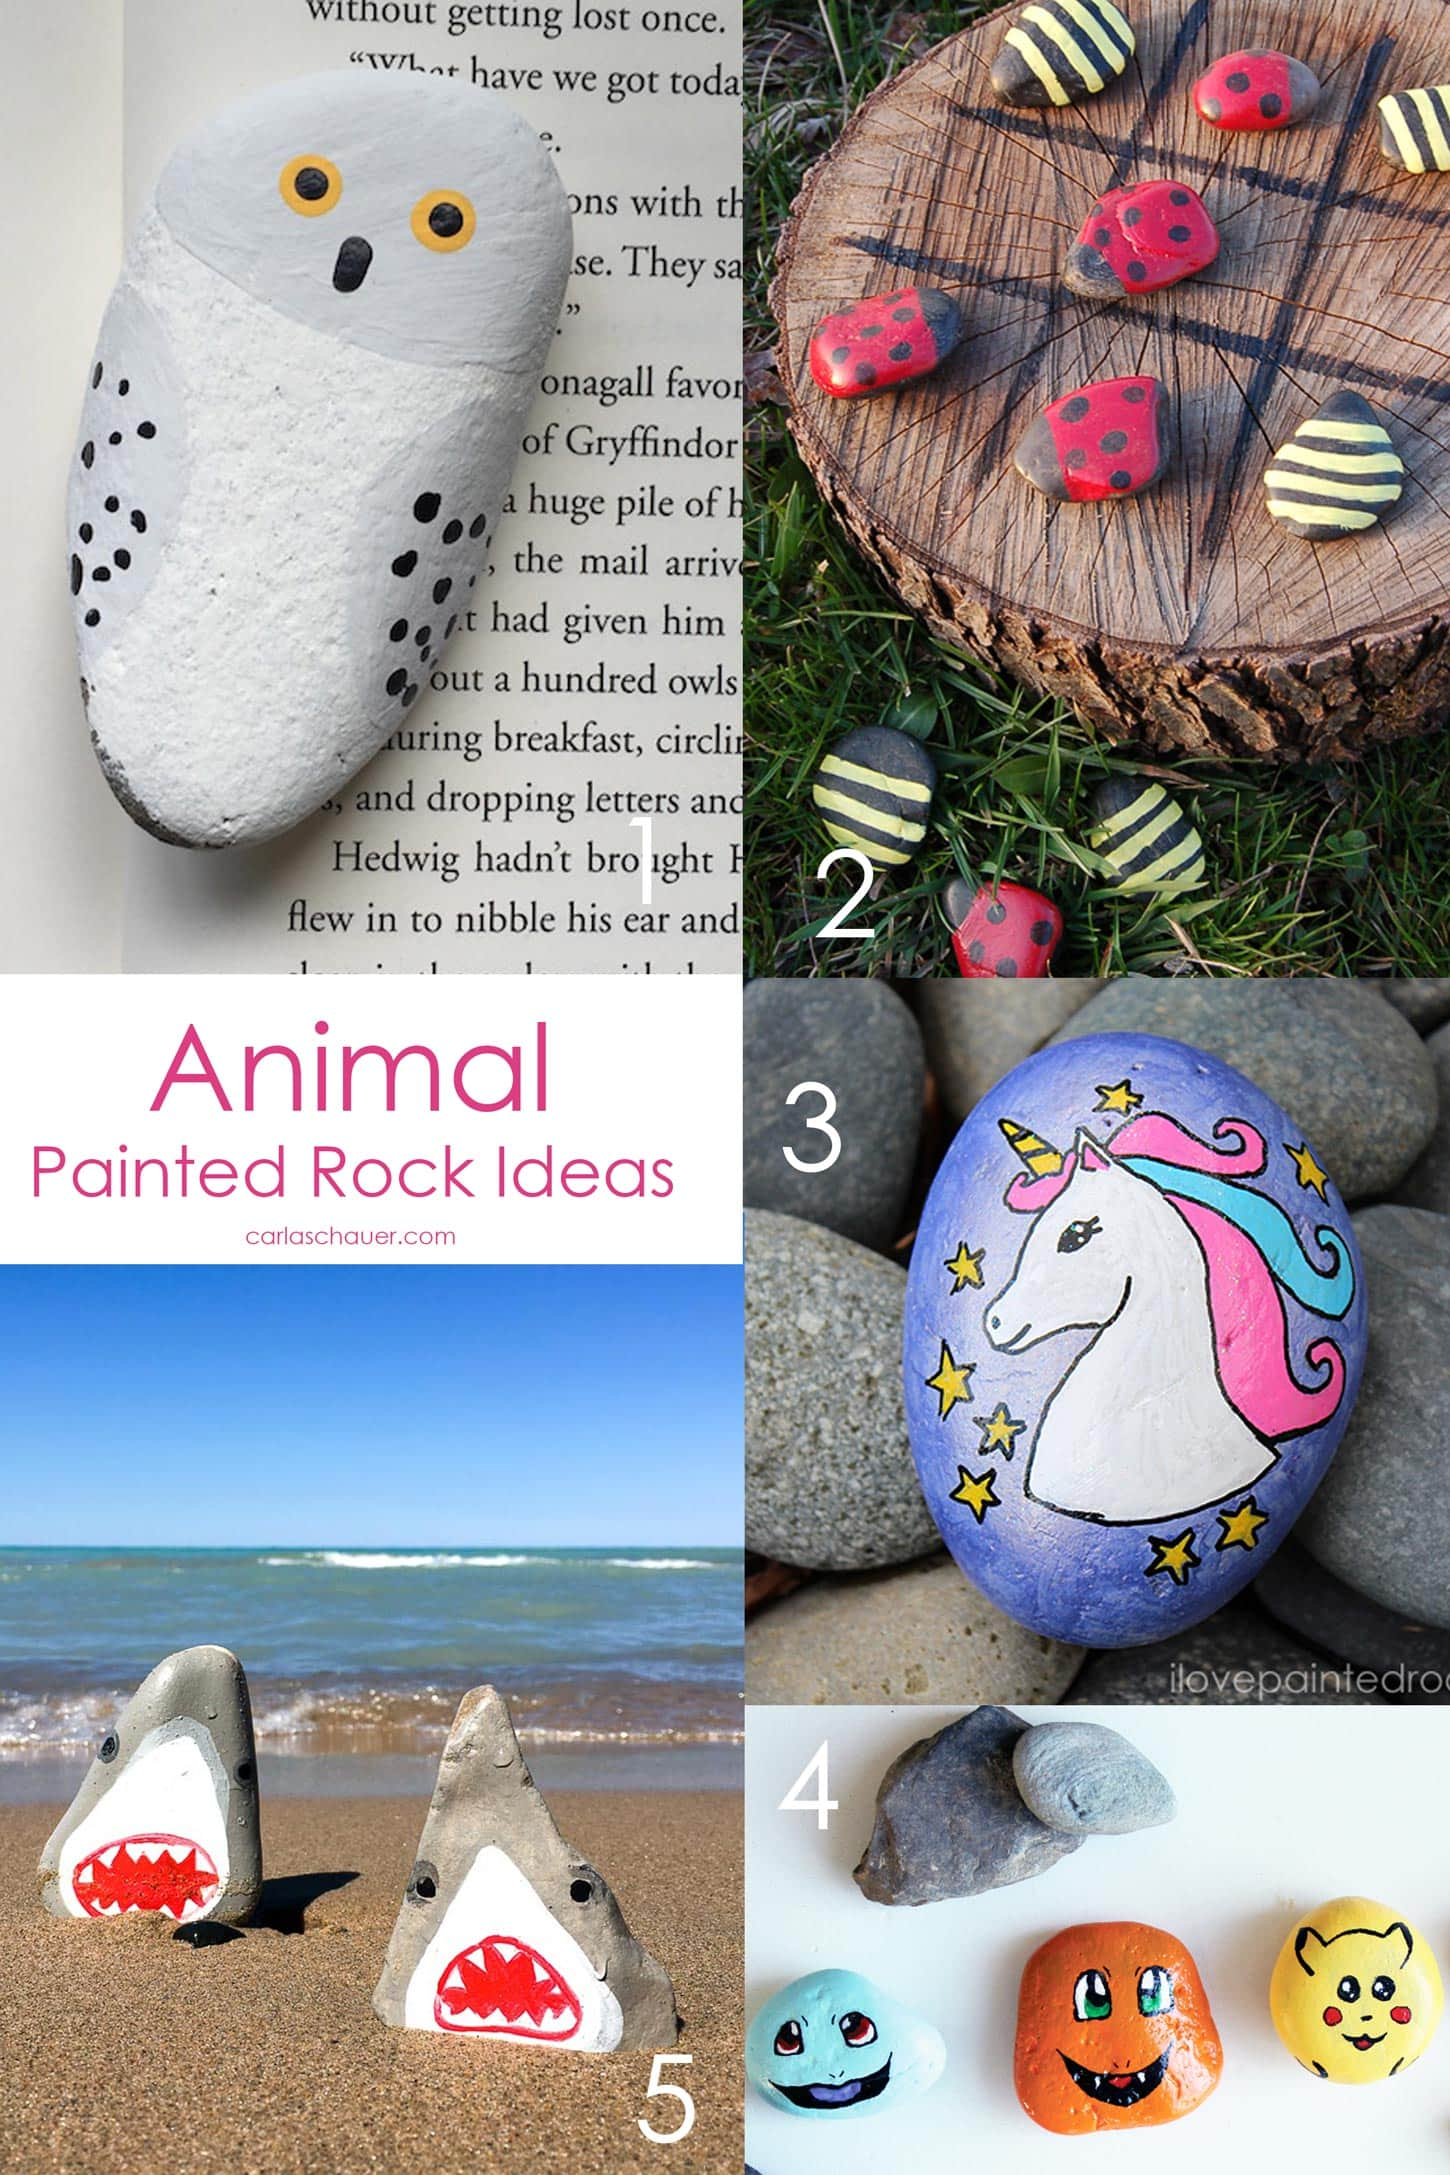 Animal Painted Rock Ideas - 20+ Easy Painting Ideas For